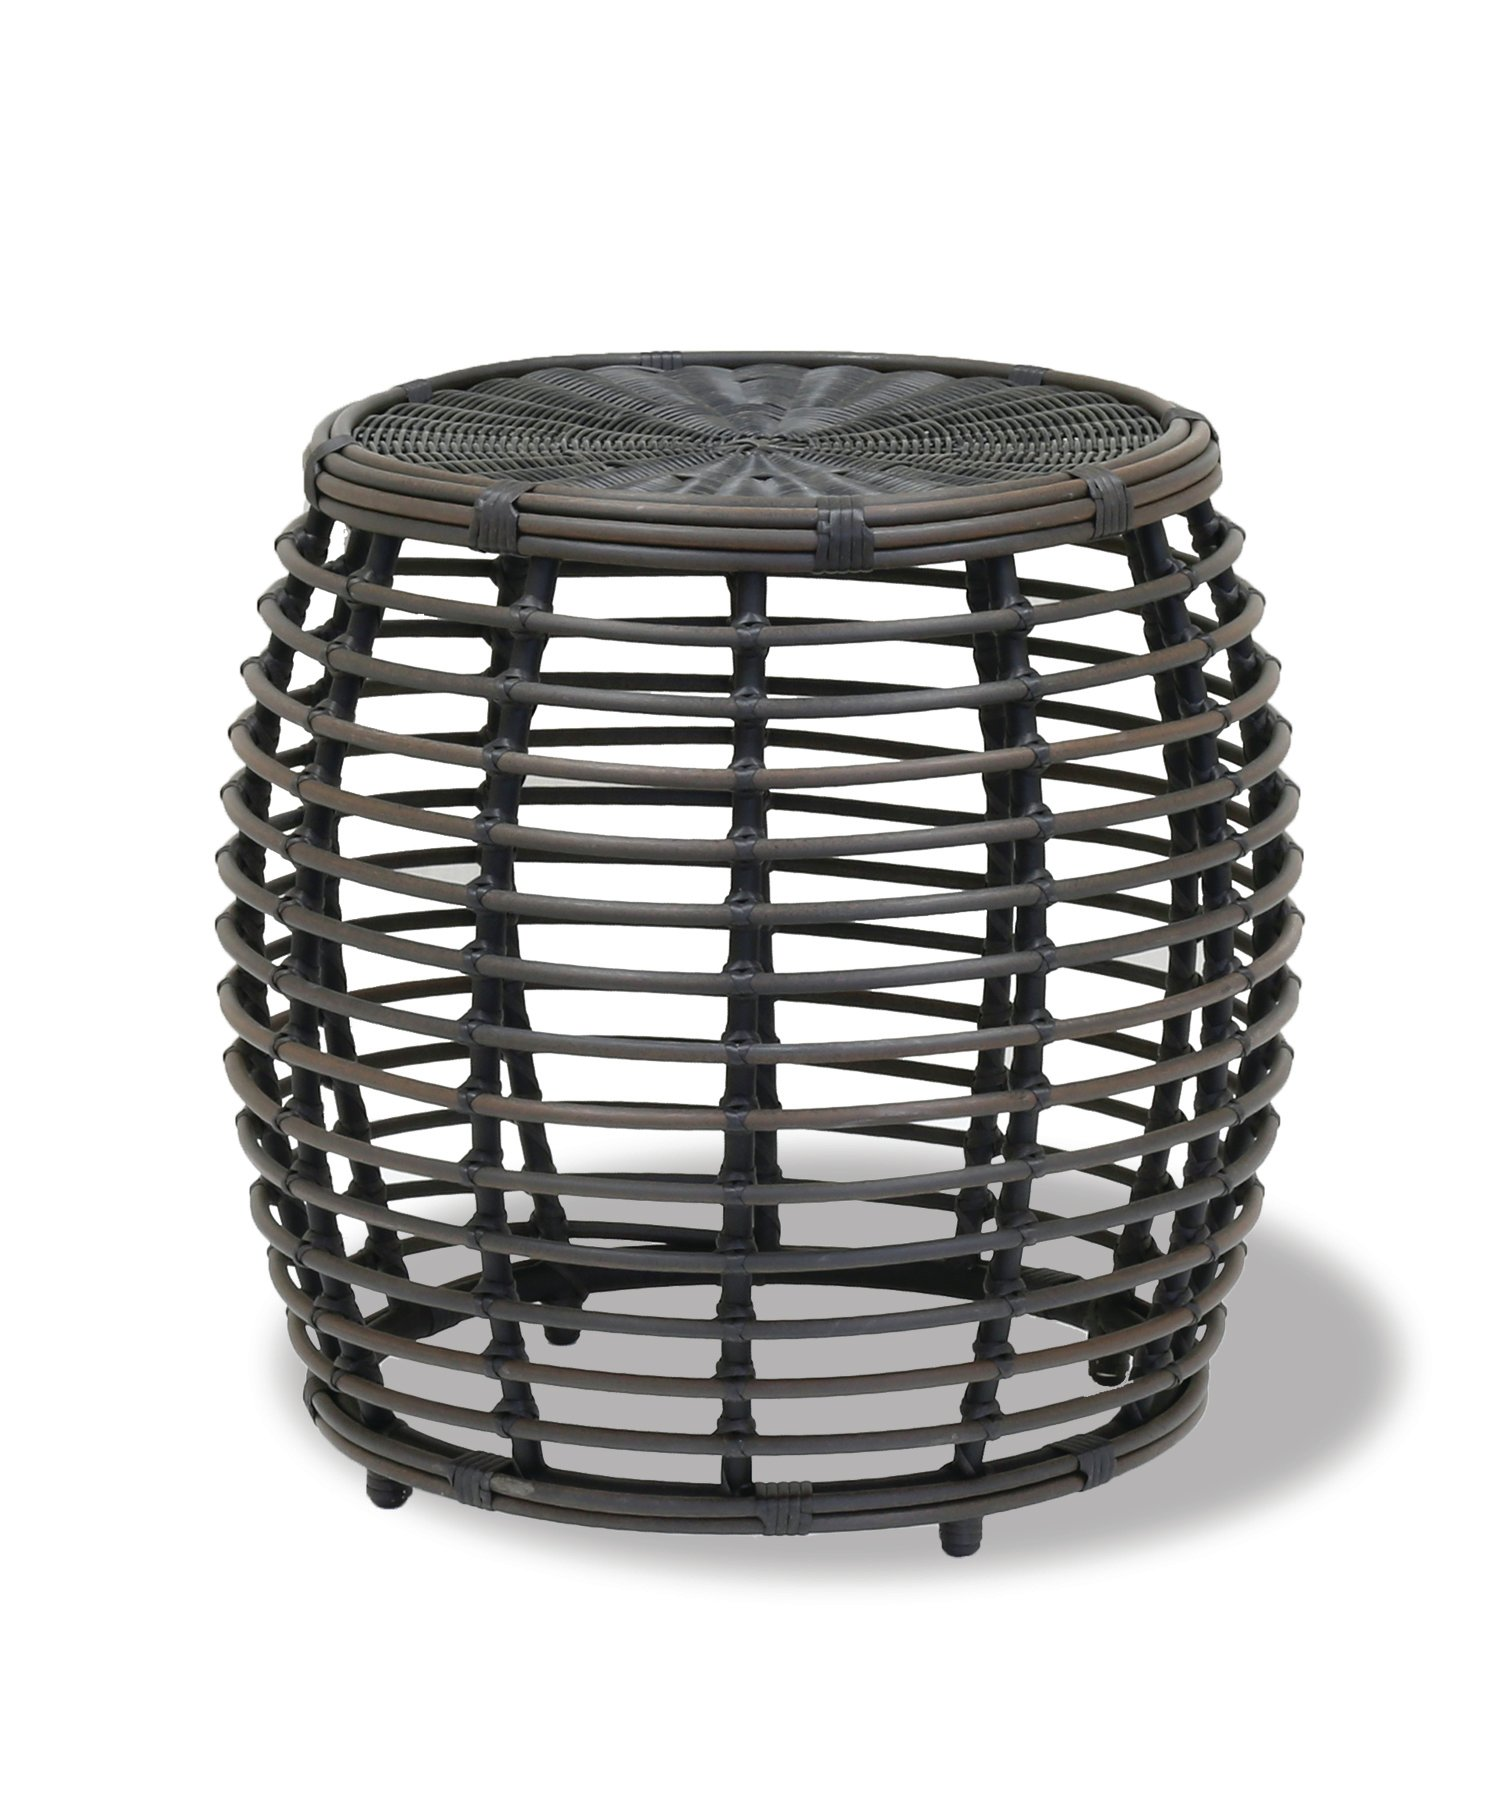 sunset west venice round wicker side table outdoor quirky bedside tables gold accent set pub style height cube furniture steel coffee legs floor transitions for uneven floors